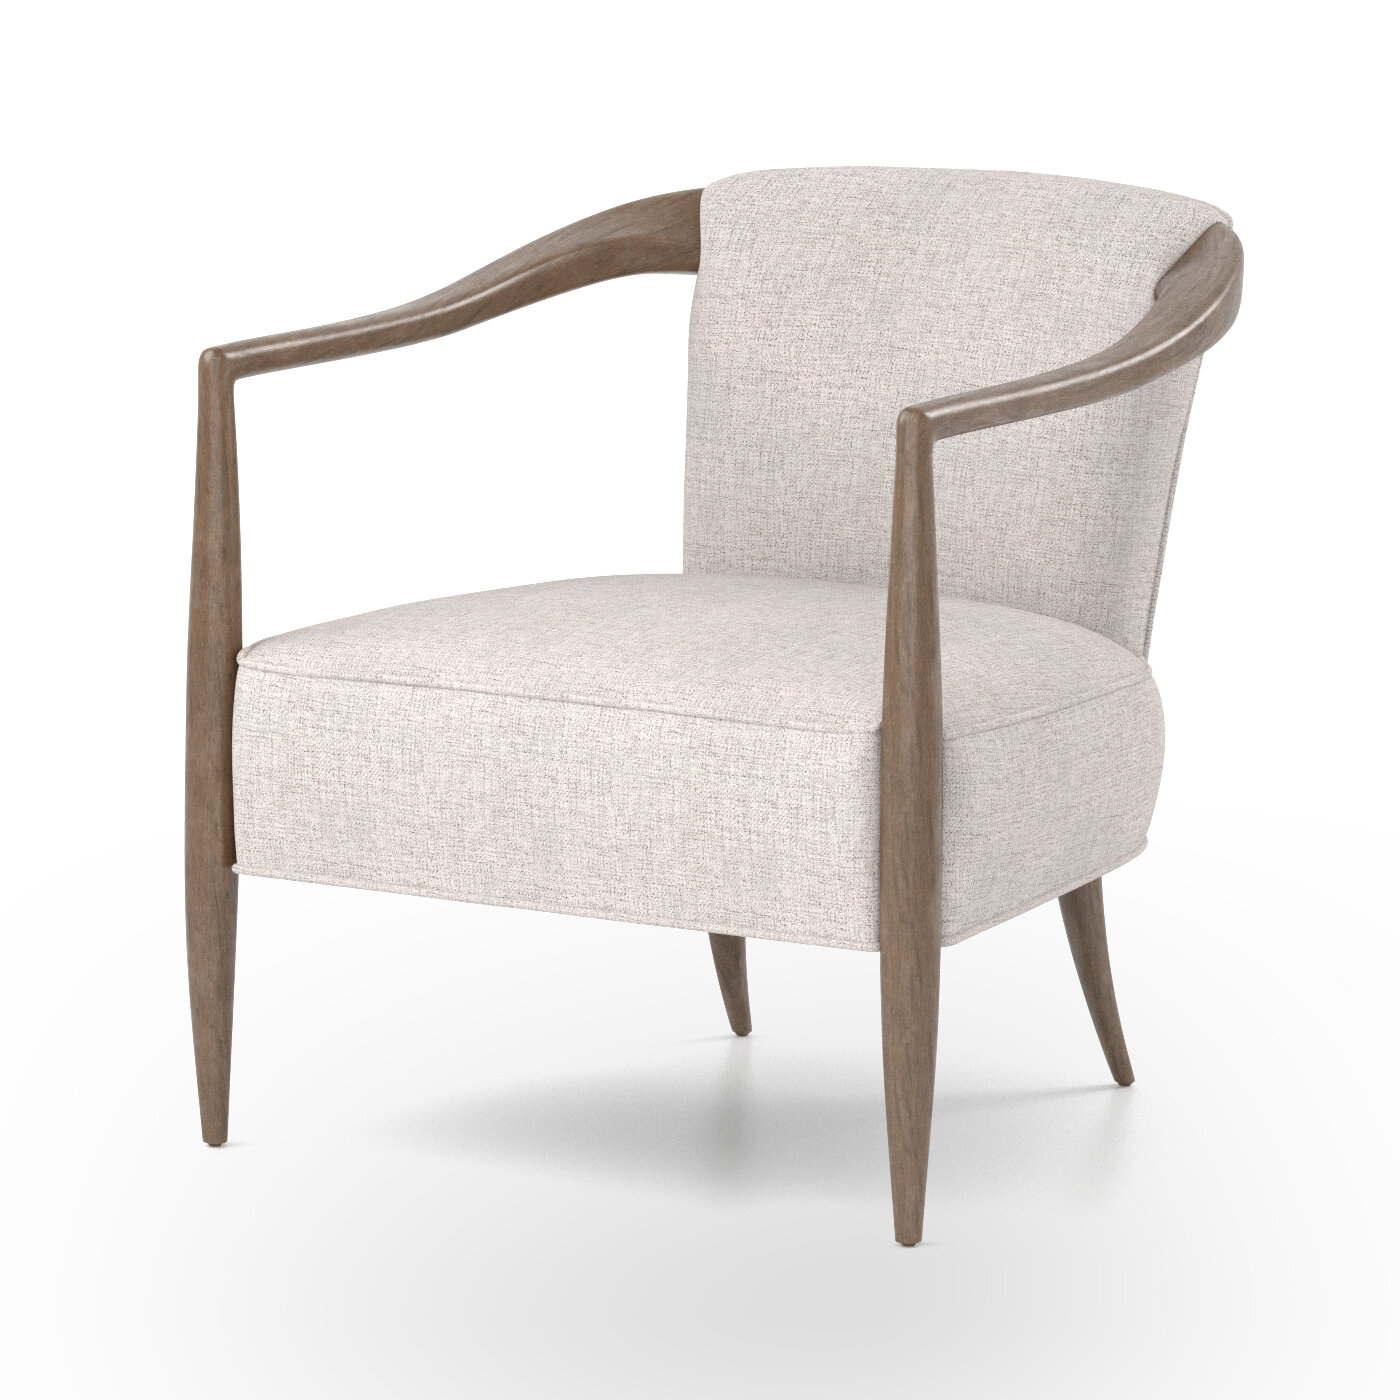 Barrel Scandinavian Accent Chairs You'Ll Love In 2021 | Wayfair Throughout Claudel Polyester Blend Barrel Chairs (View 2 of 15)